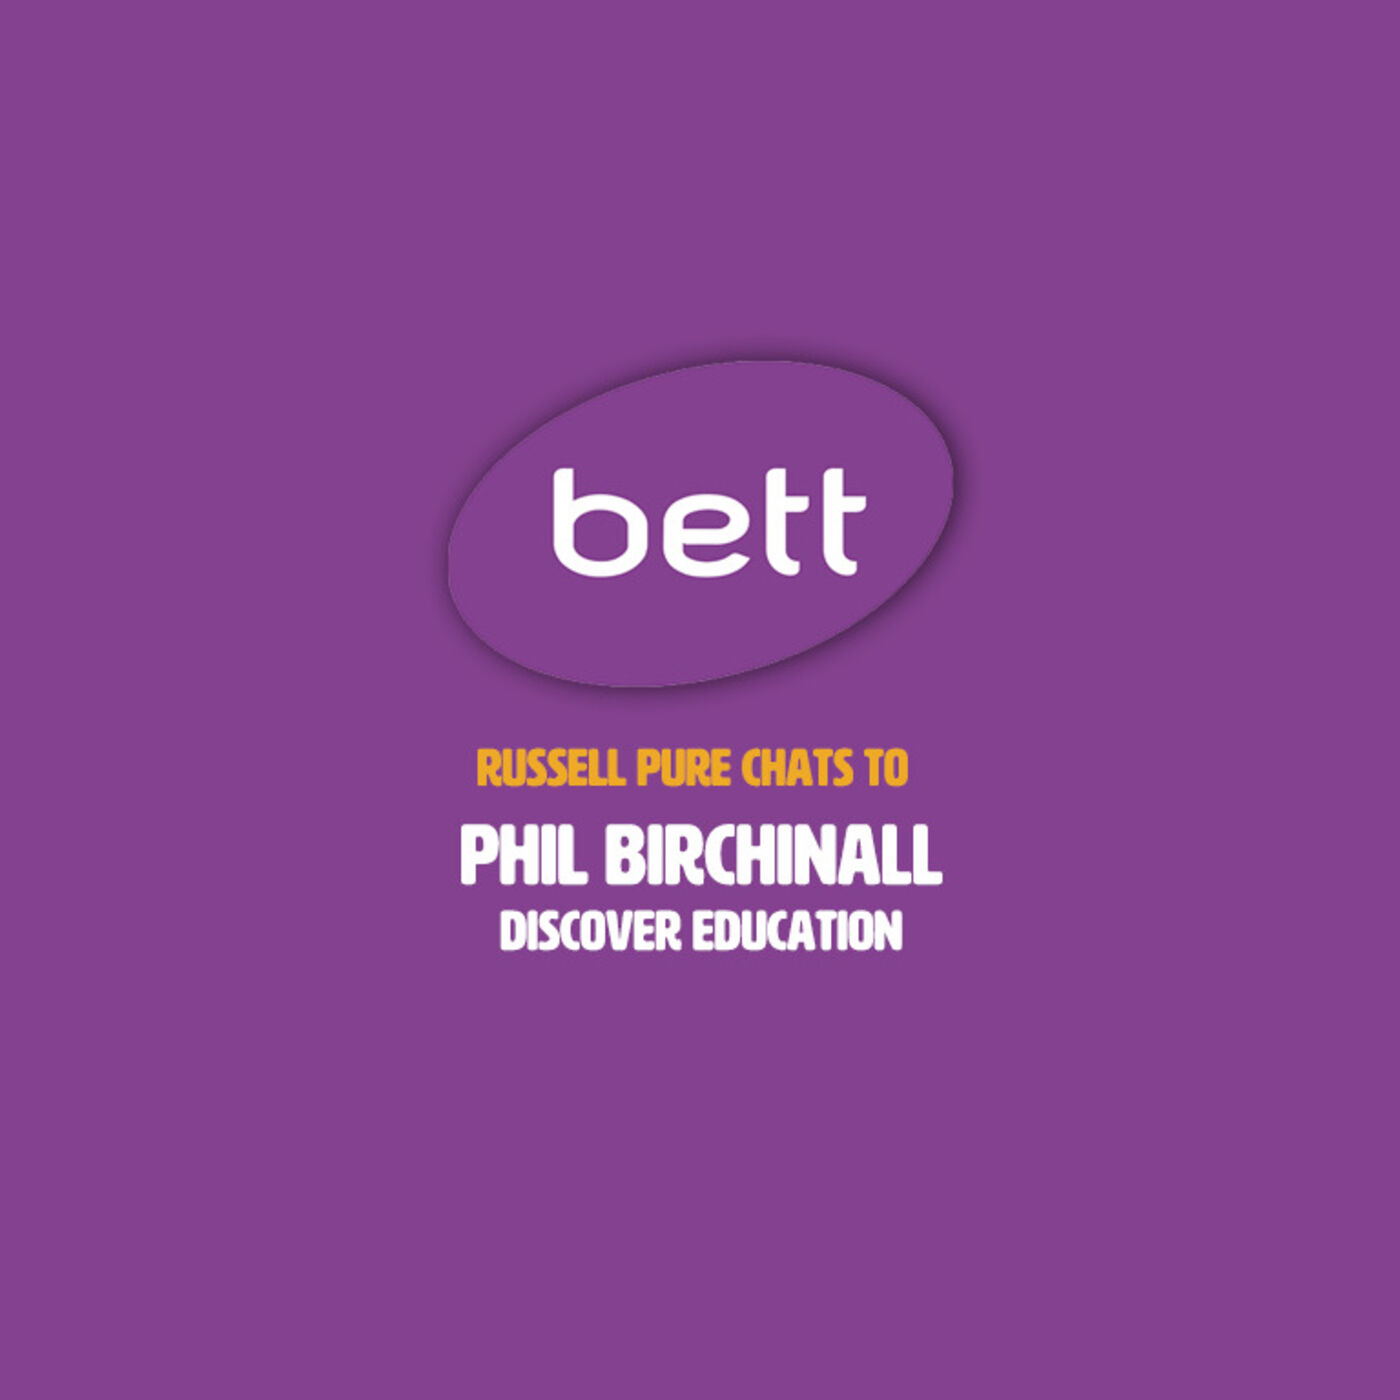 Discovery Education's Phil Birchinall chats about improvements in AR and bringing Mars to Bett